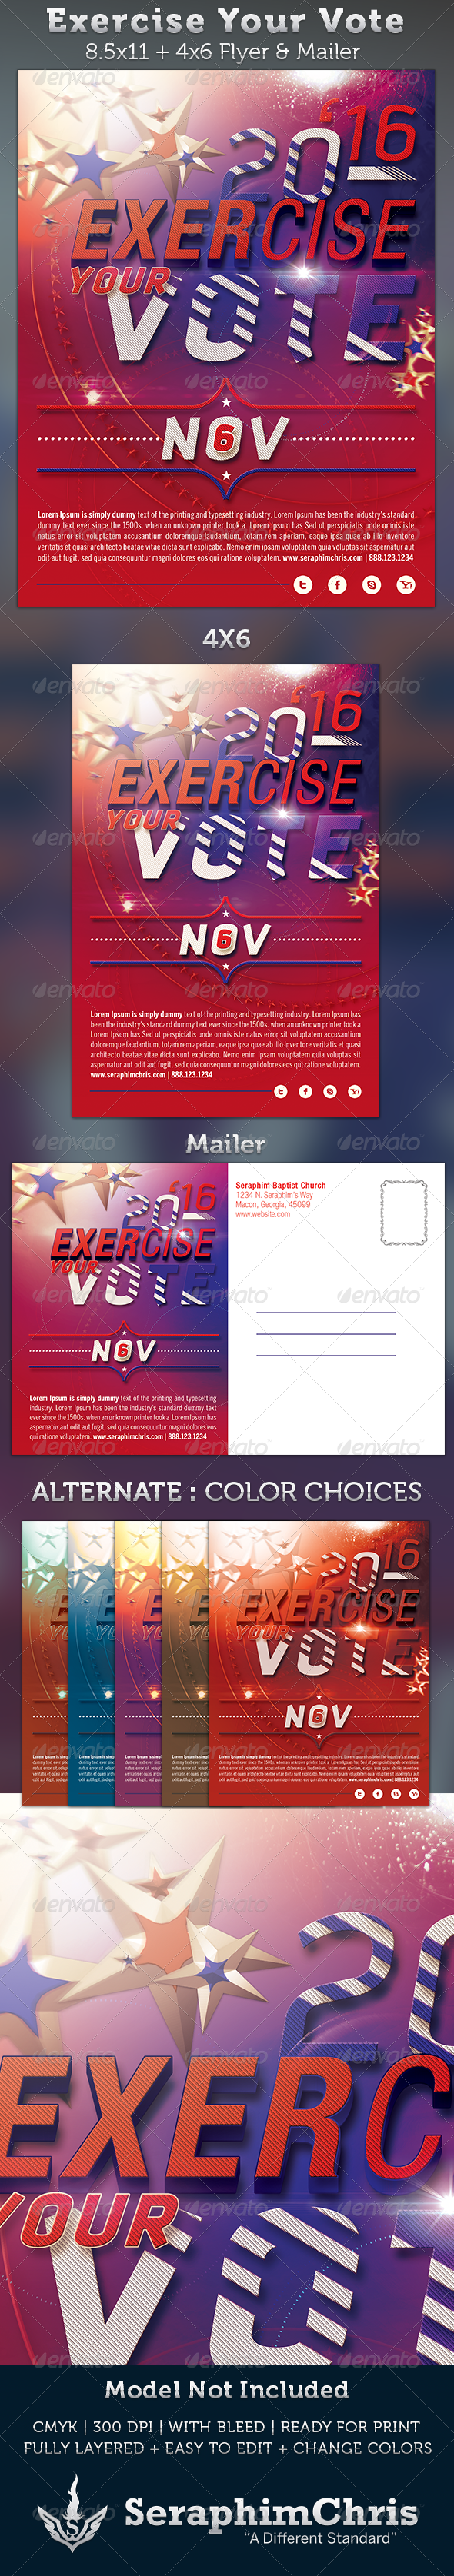 Exercise Your Vote: Flyer & Mailer Template - Corporate Flyers